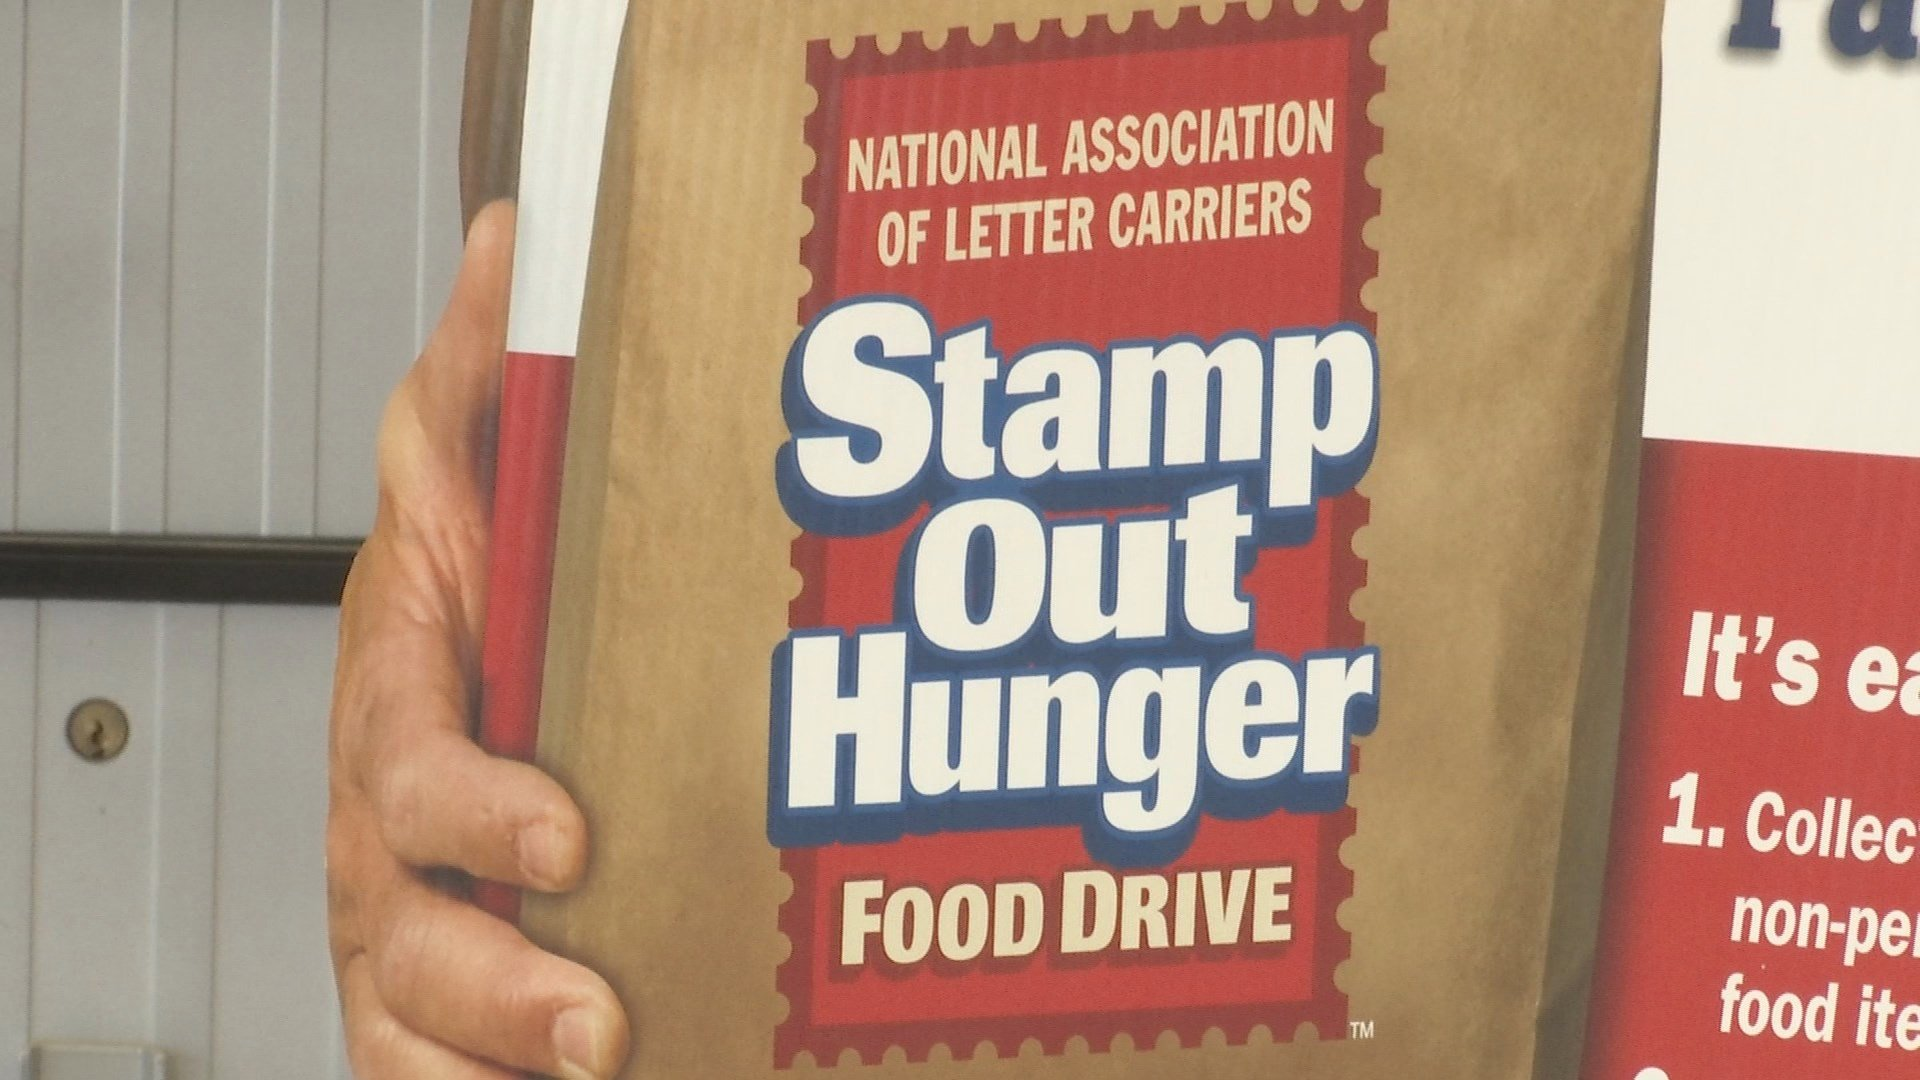 National Letter Carrier Food drive happening Saturday